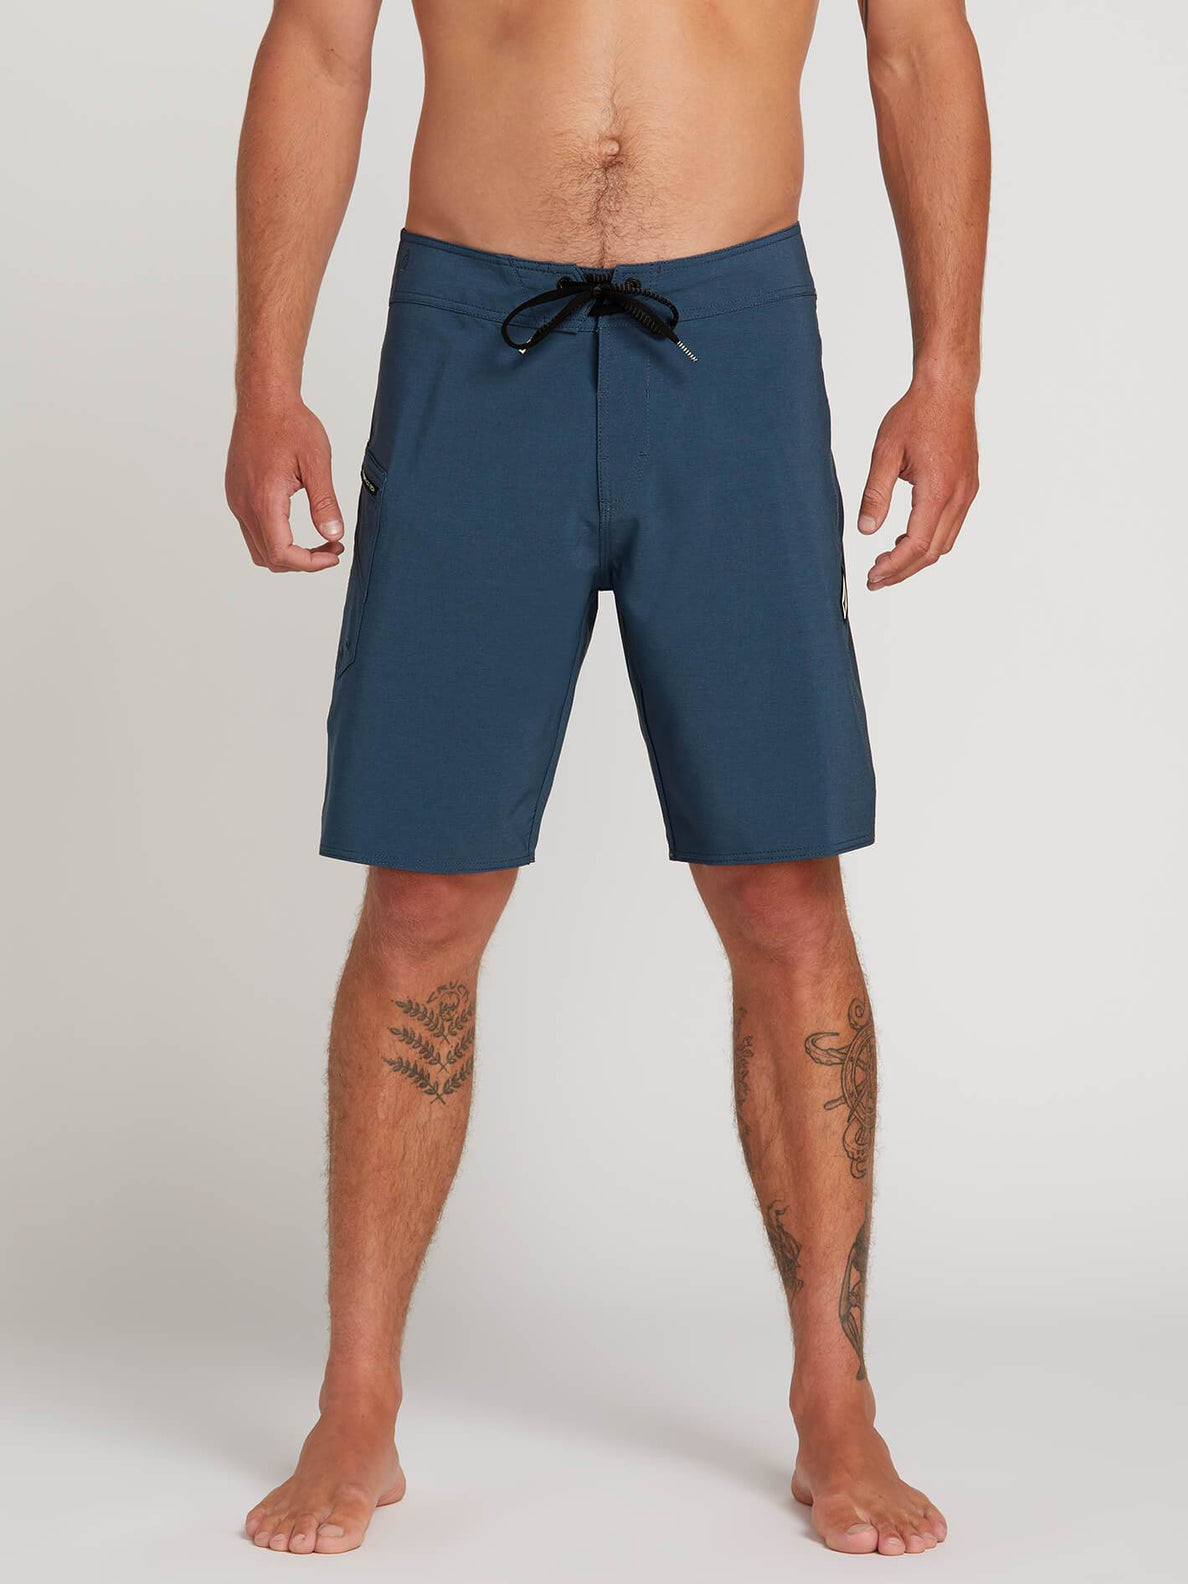 20 Boardshorts Lido Boardshorts Lido Mod 20 Boardshorts Solid Solid Mod EH2IWD9